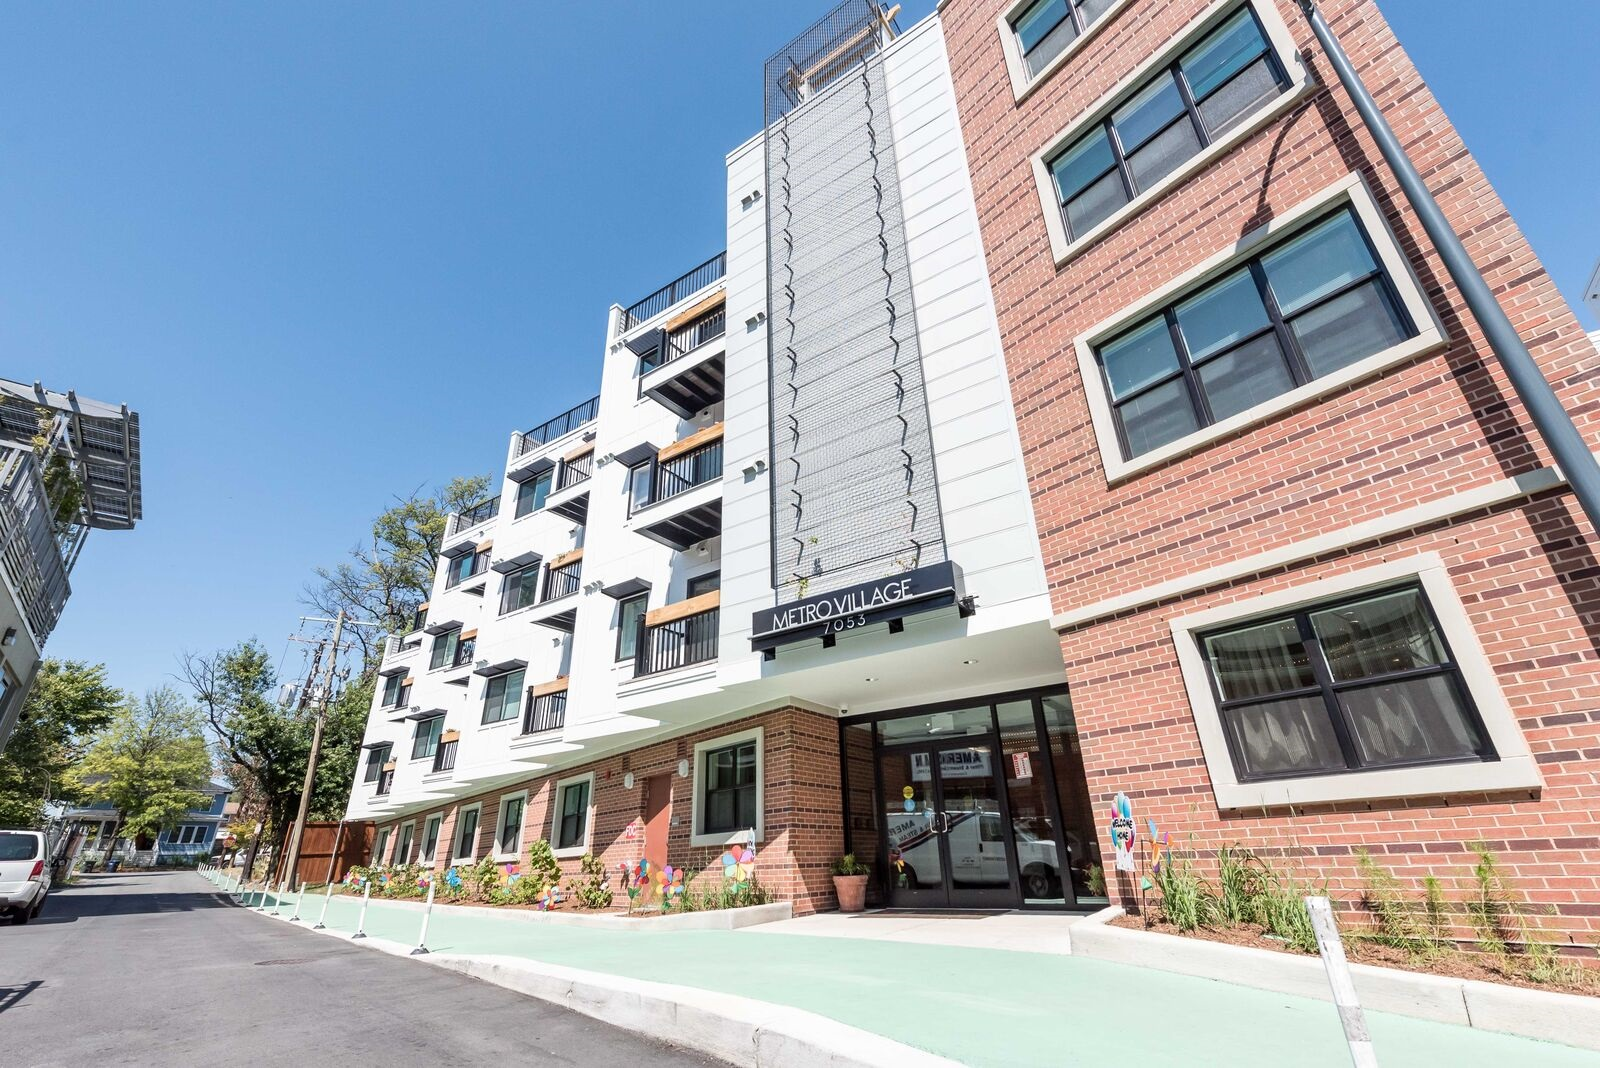 Residential One Inc Completes Successful Apartment Lease Up In Washington Dc